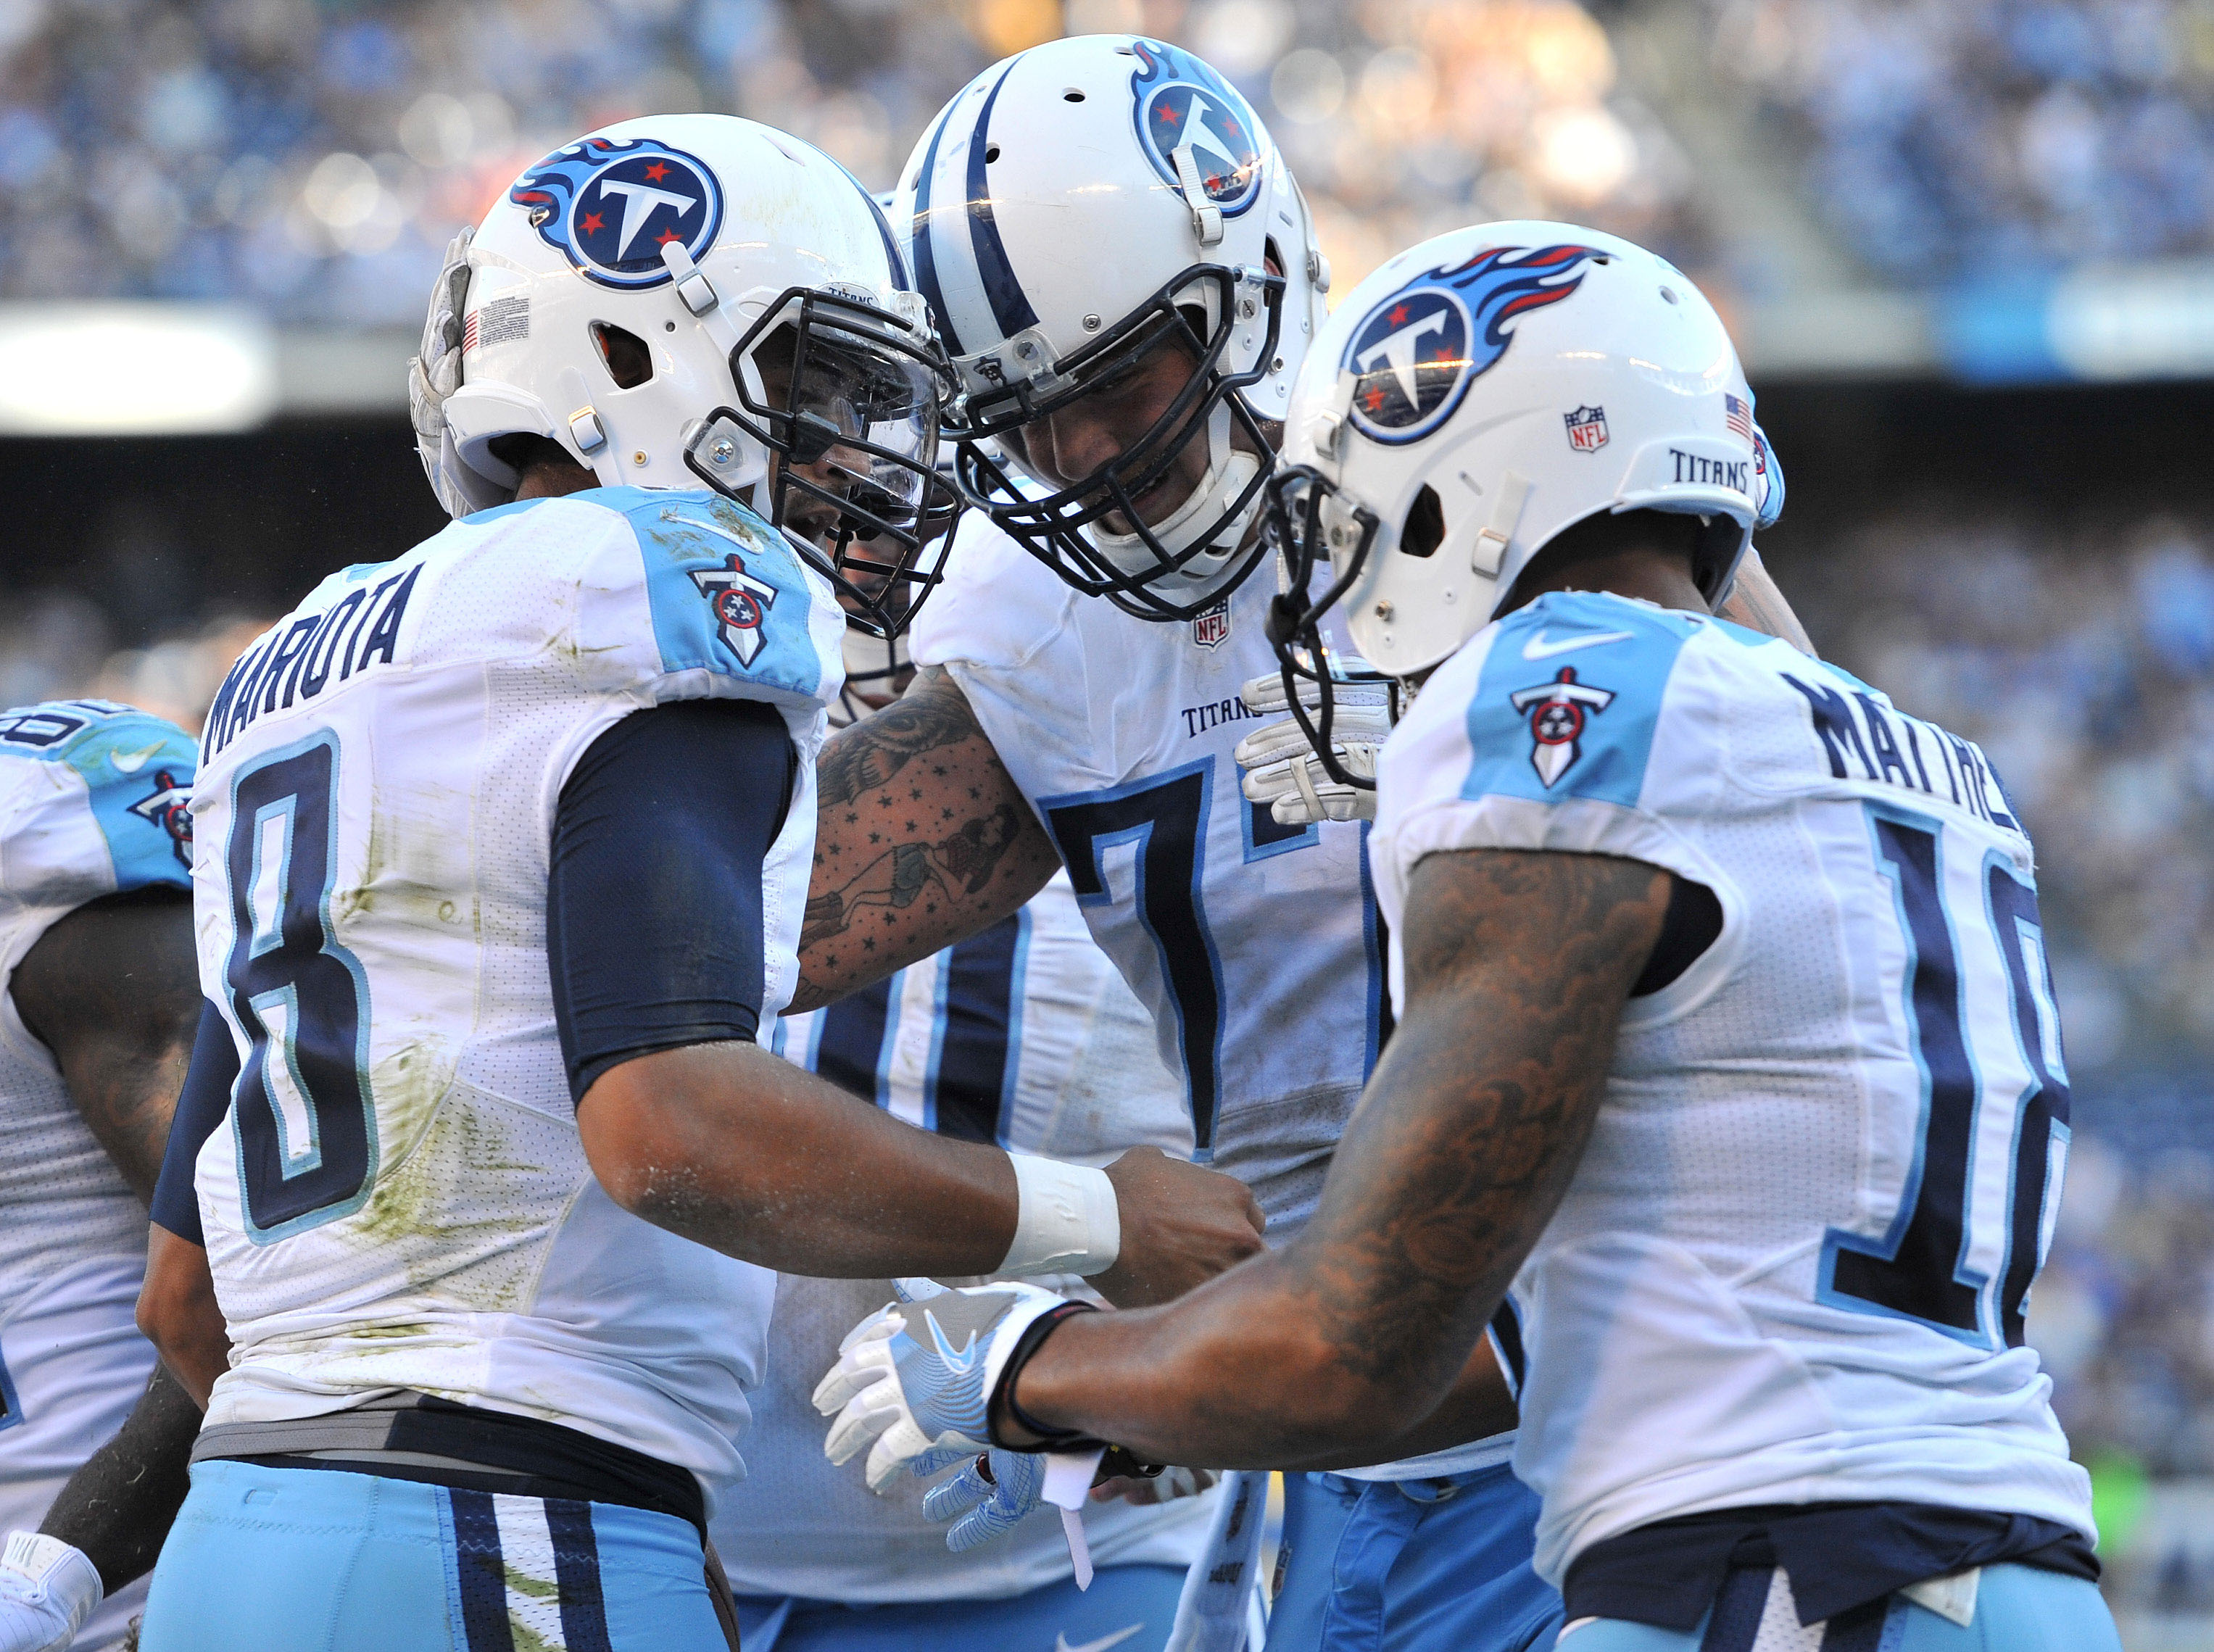 9668158-nfl-tennessee-titans-at-san-diego-chargers